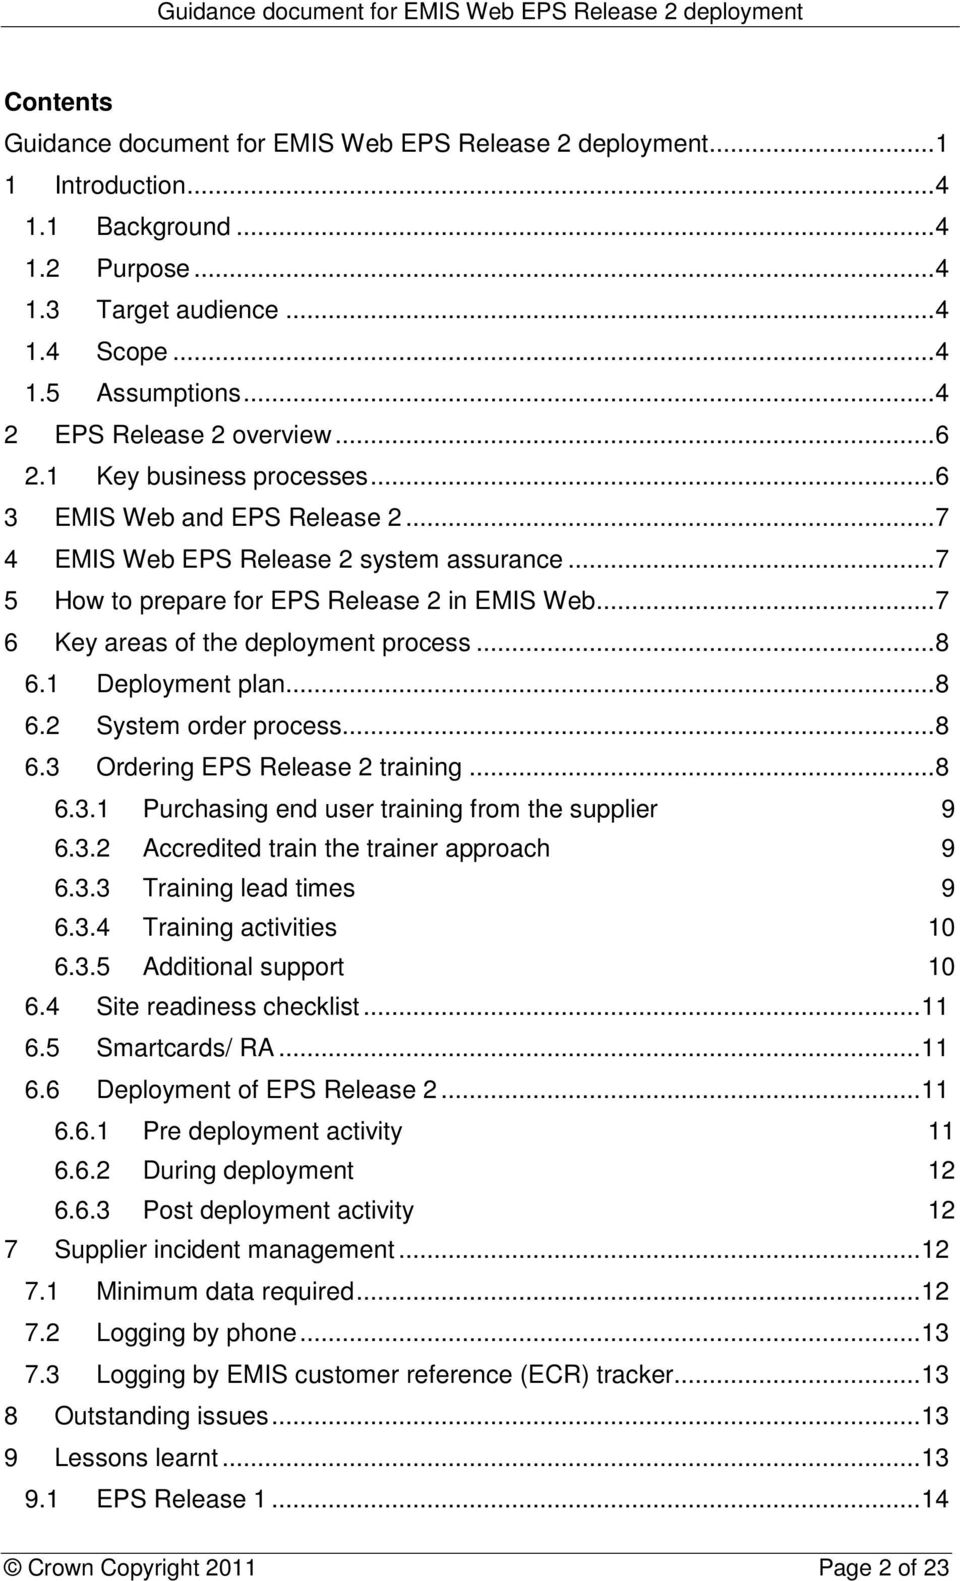 .. 7 6 Key areas of the deployment process... 8 6.1 Deployment plan... 8 6.2 System order process... 8 6.3 Ordering EPS Release 2 training... 8 6.3.1 Purchasing end user training from the supplier 9 6.